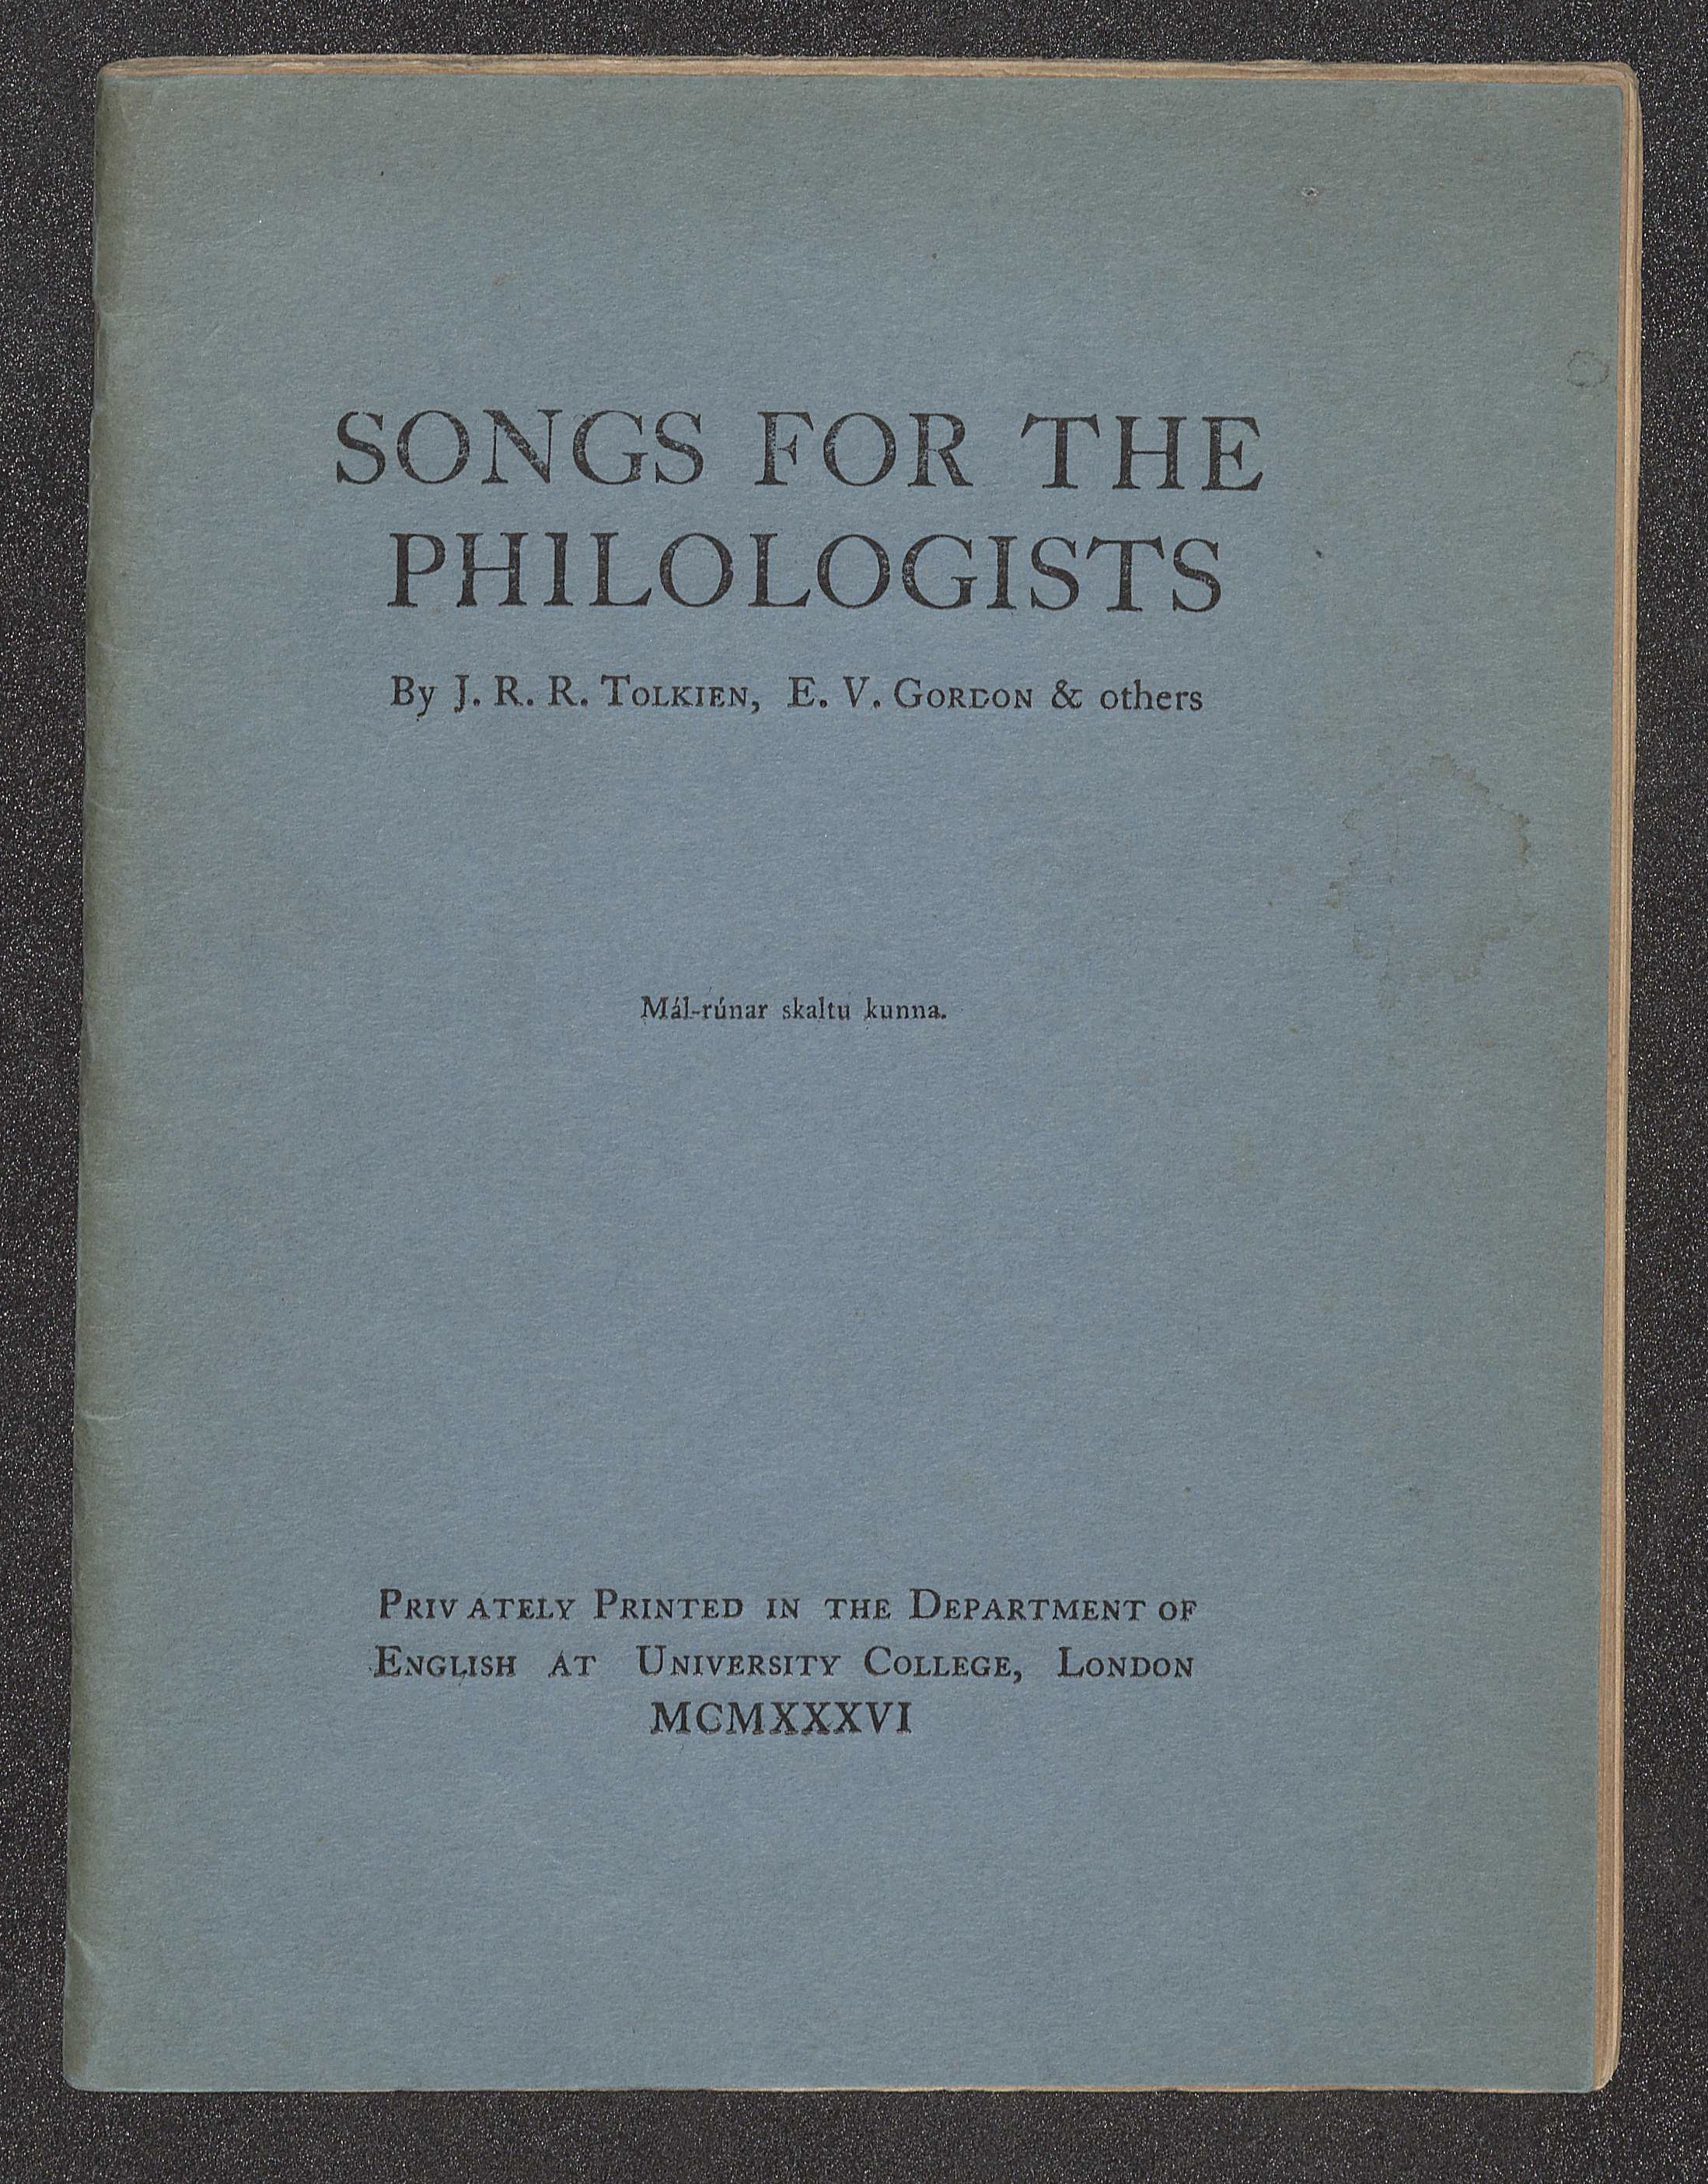 The front cover of Songs for the Philologists, which lists Tolkien first among the volume's authors.  PR6039.O32 S65 1936, Gift of Joan Kellogg, 2013.